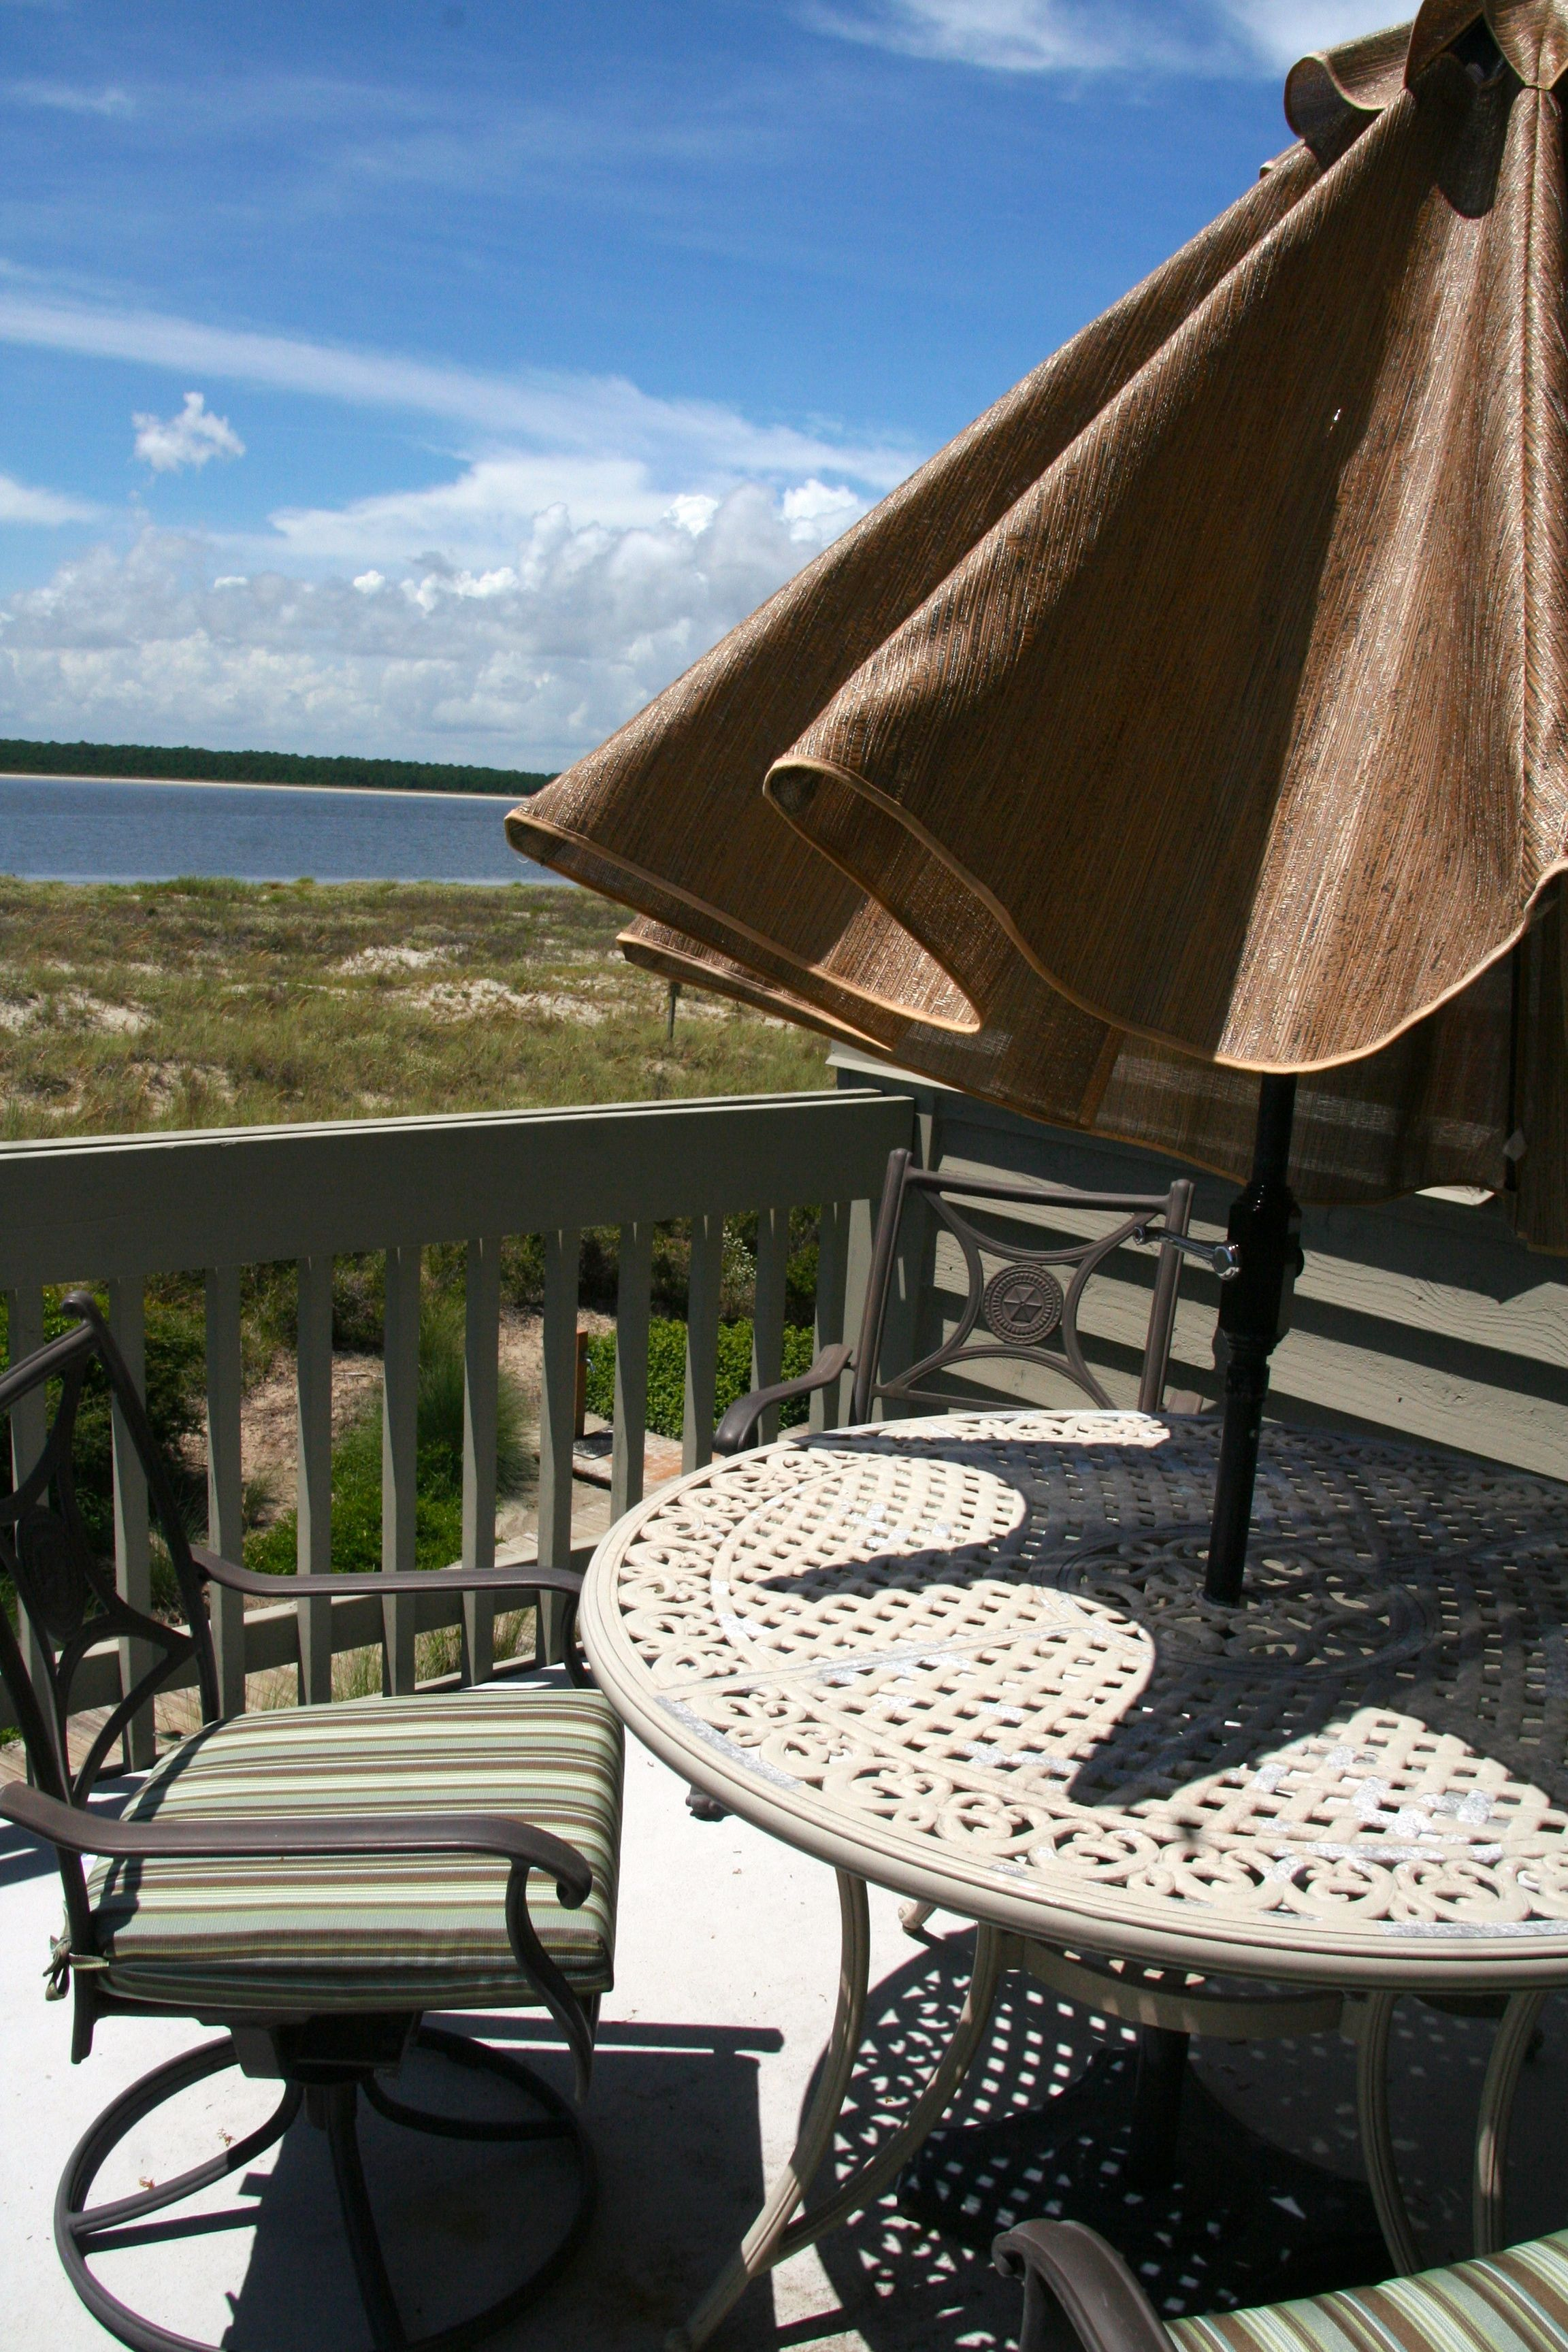 Enjoy cool beverages and appetizers while enjoying the scenery.